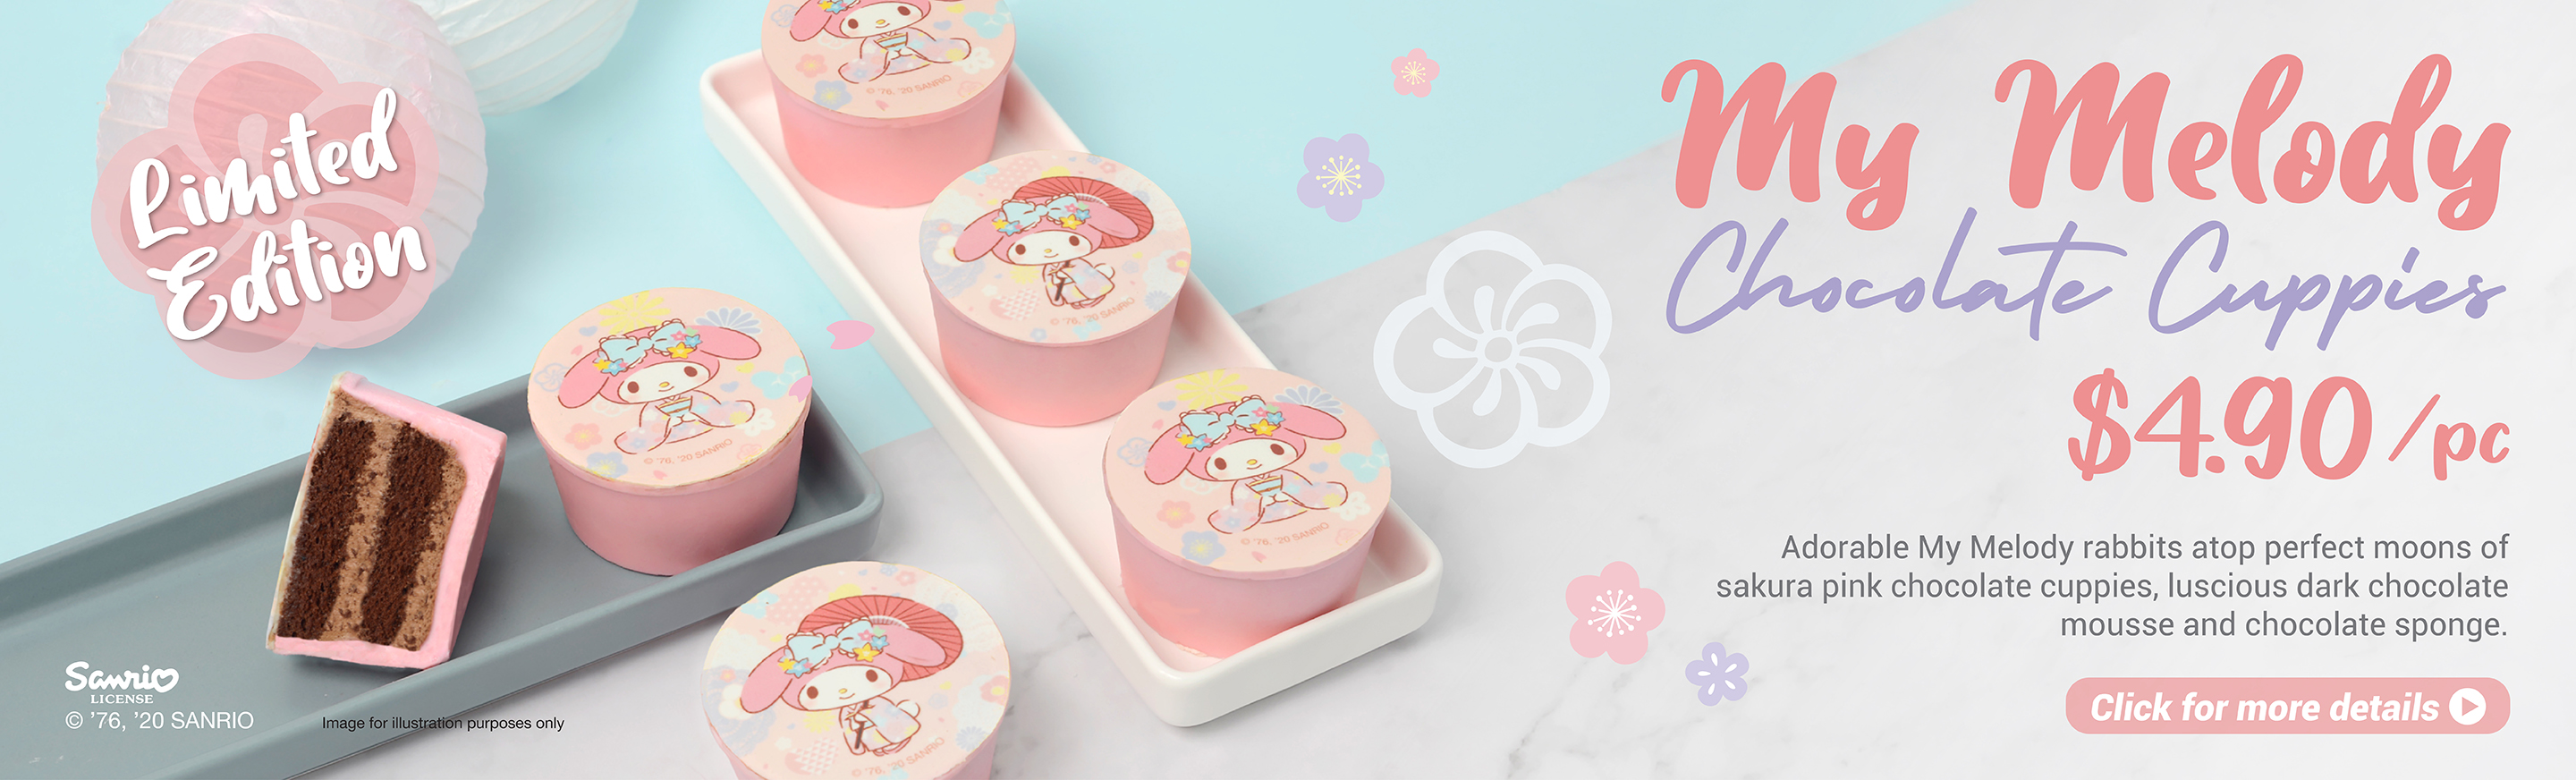 My Melody Chocolate Cuppies